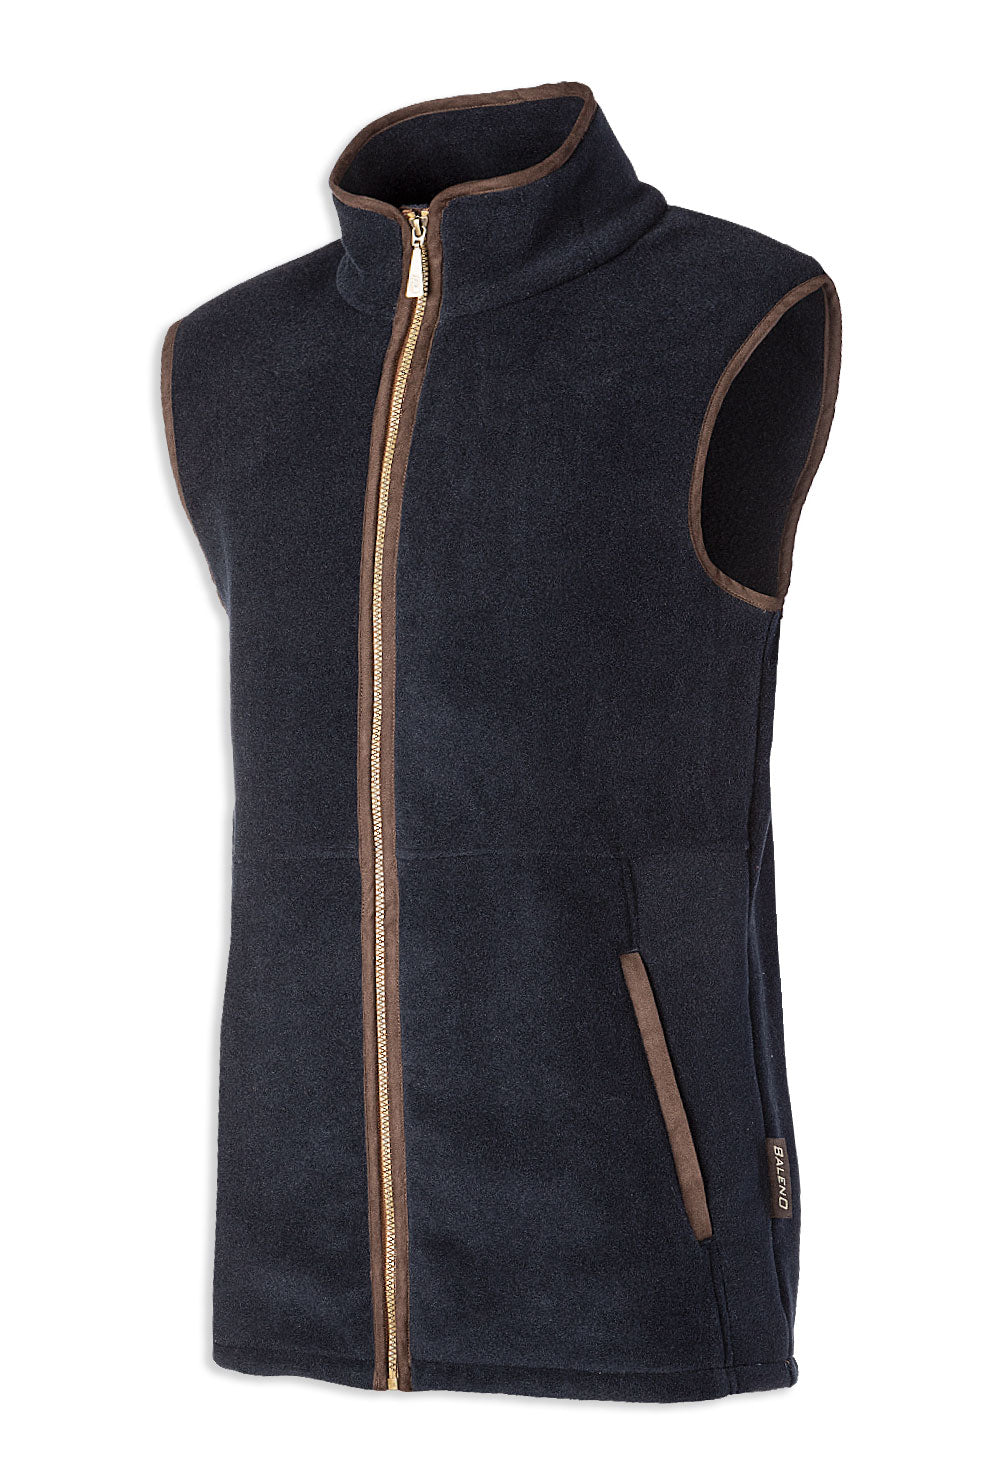 Navy Baleno Highfield Fleece Gilet